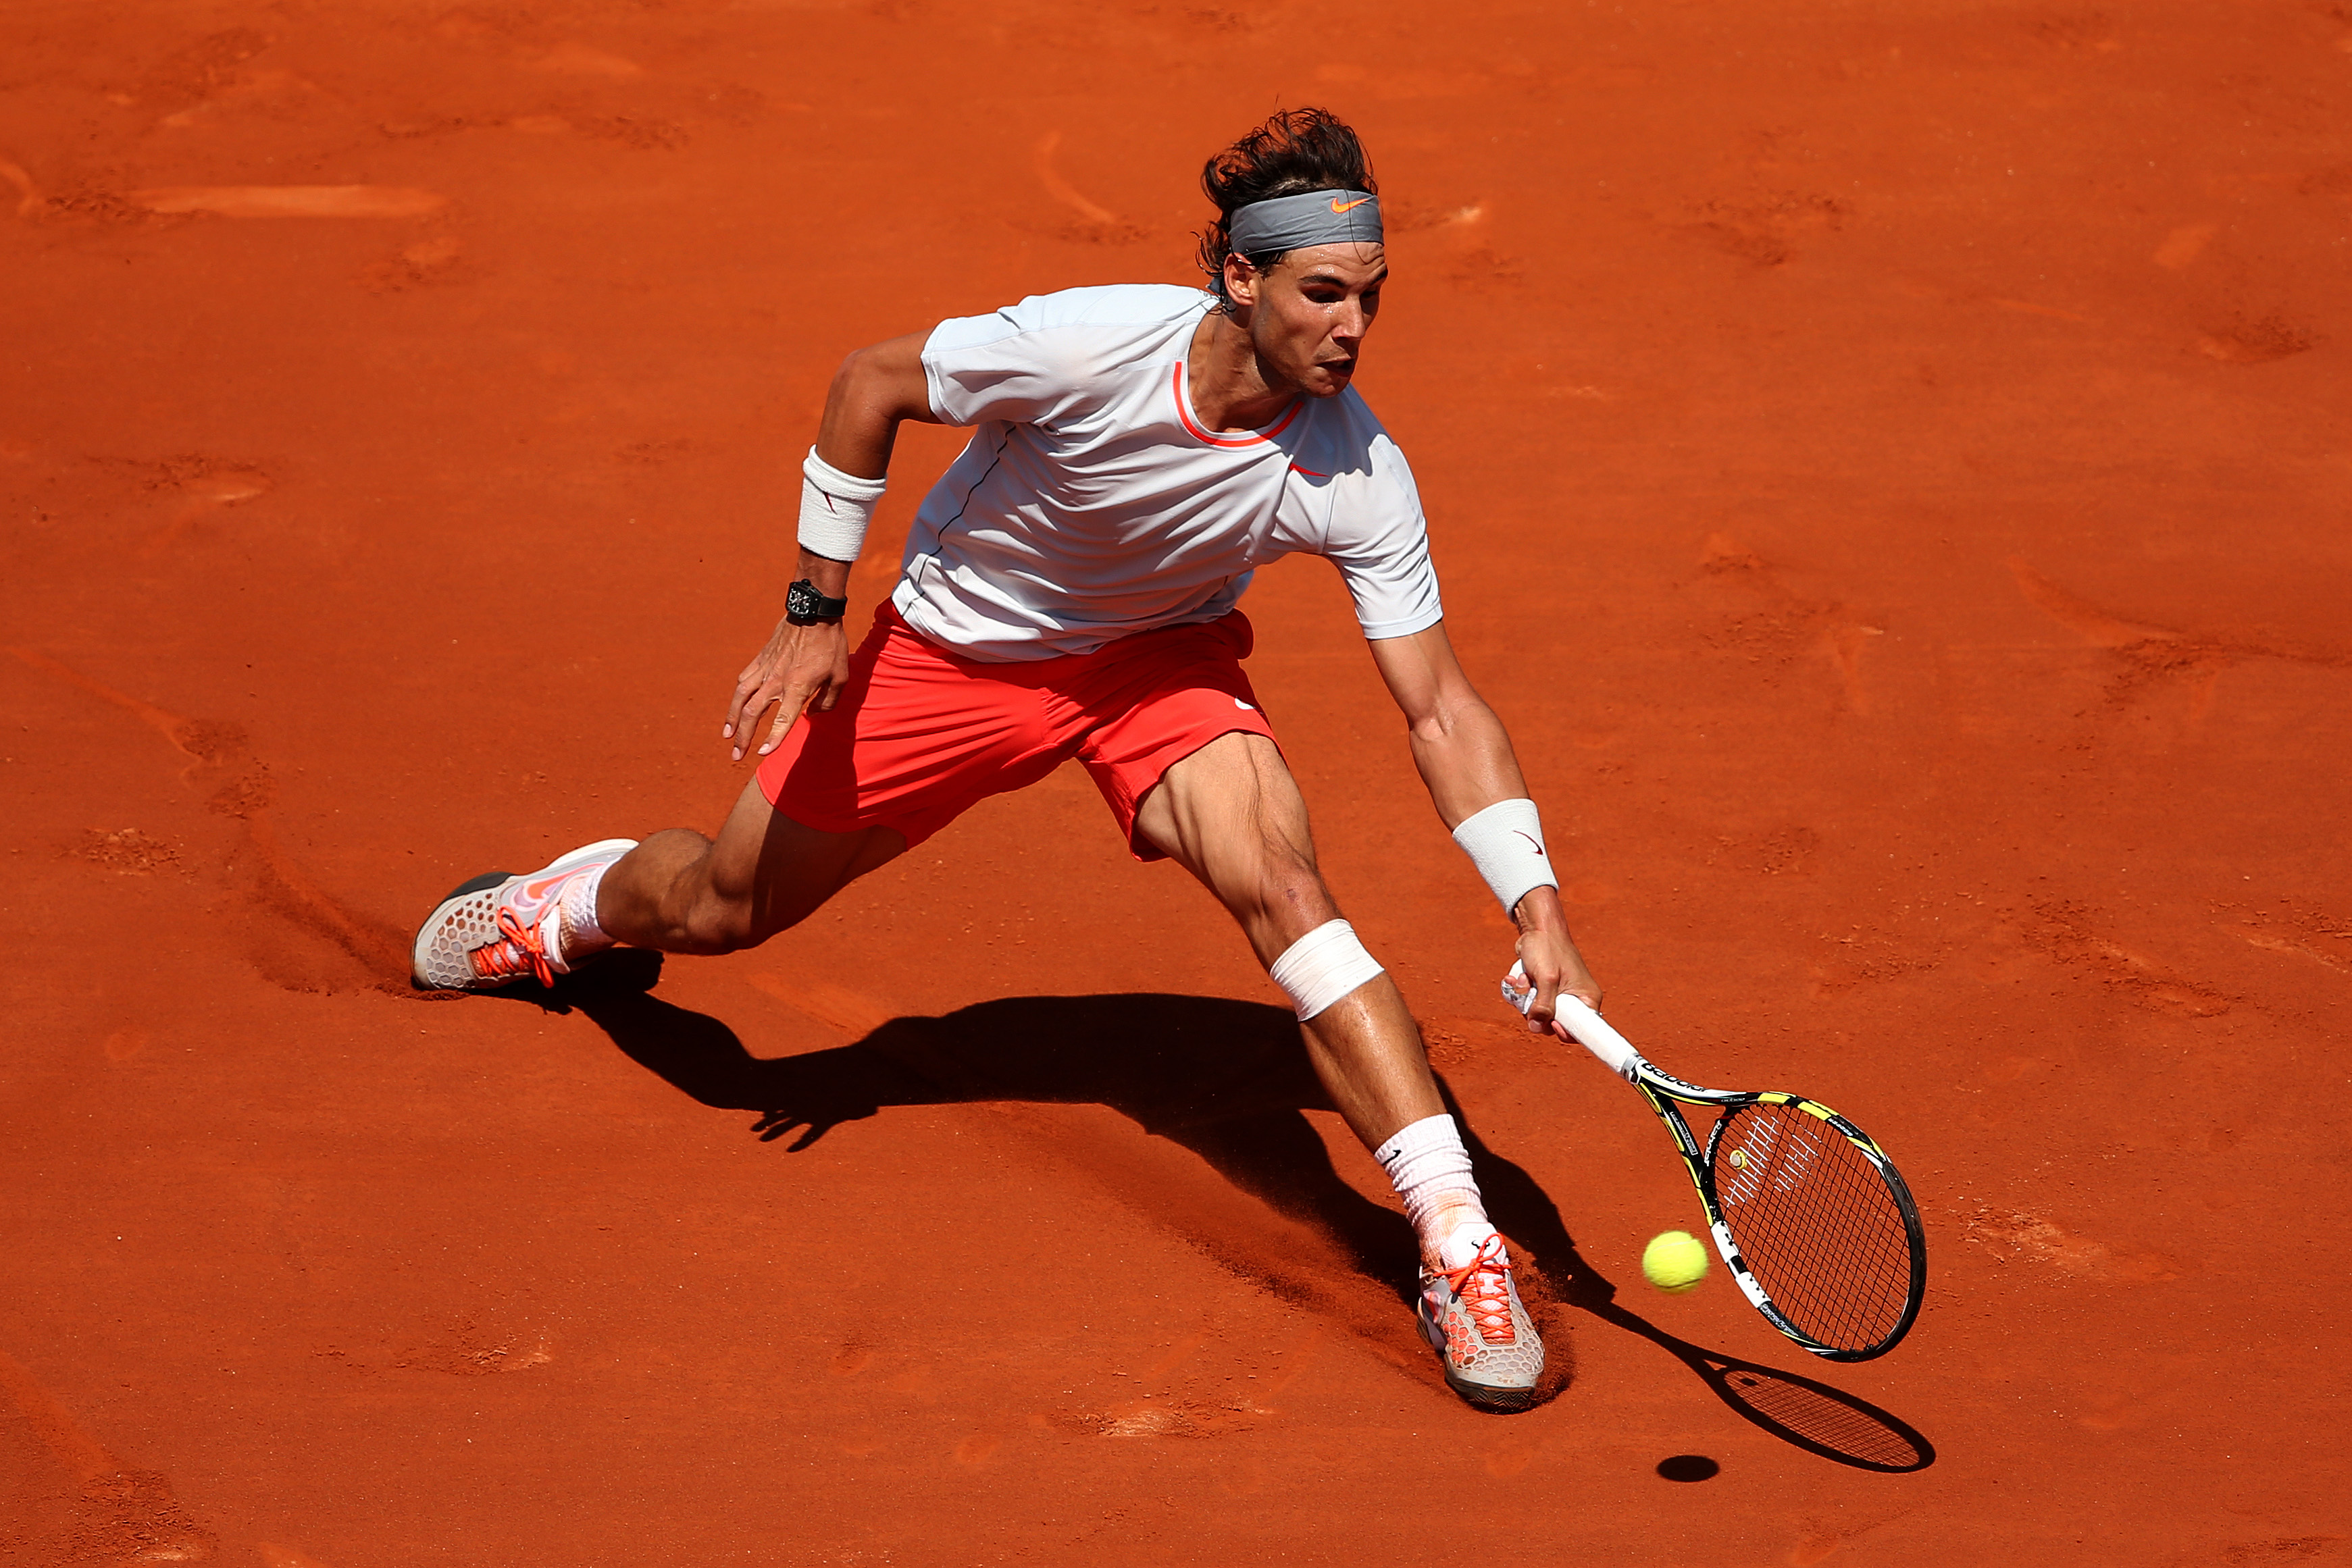 A simple kit for Nadal's eighth French Open title.